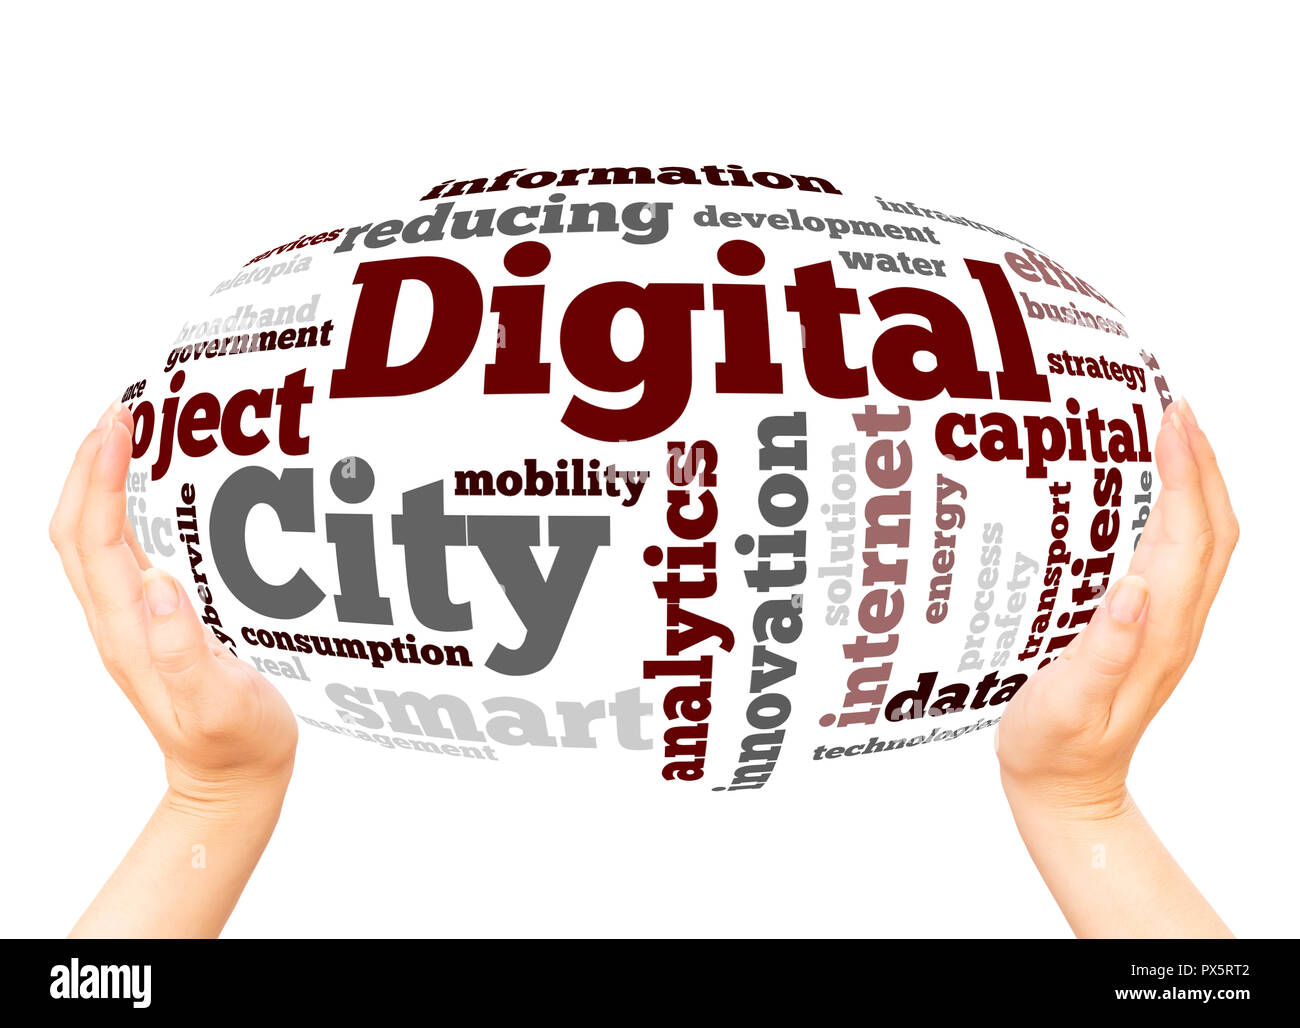 Digital City word cloud  concept on white background. - Stock Image